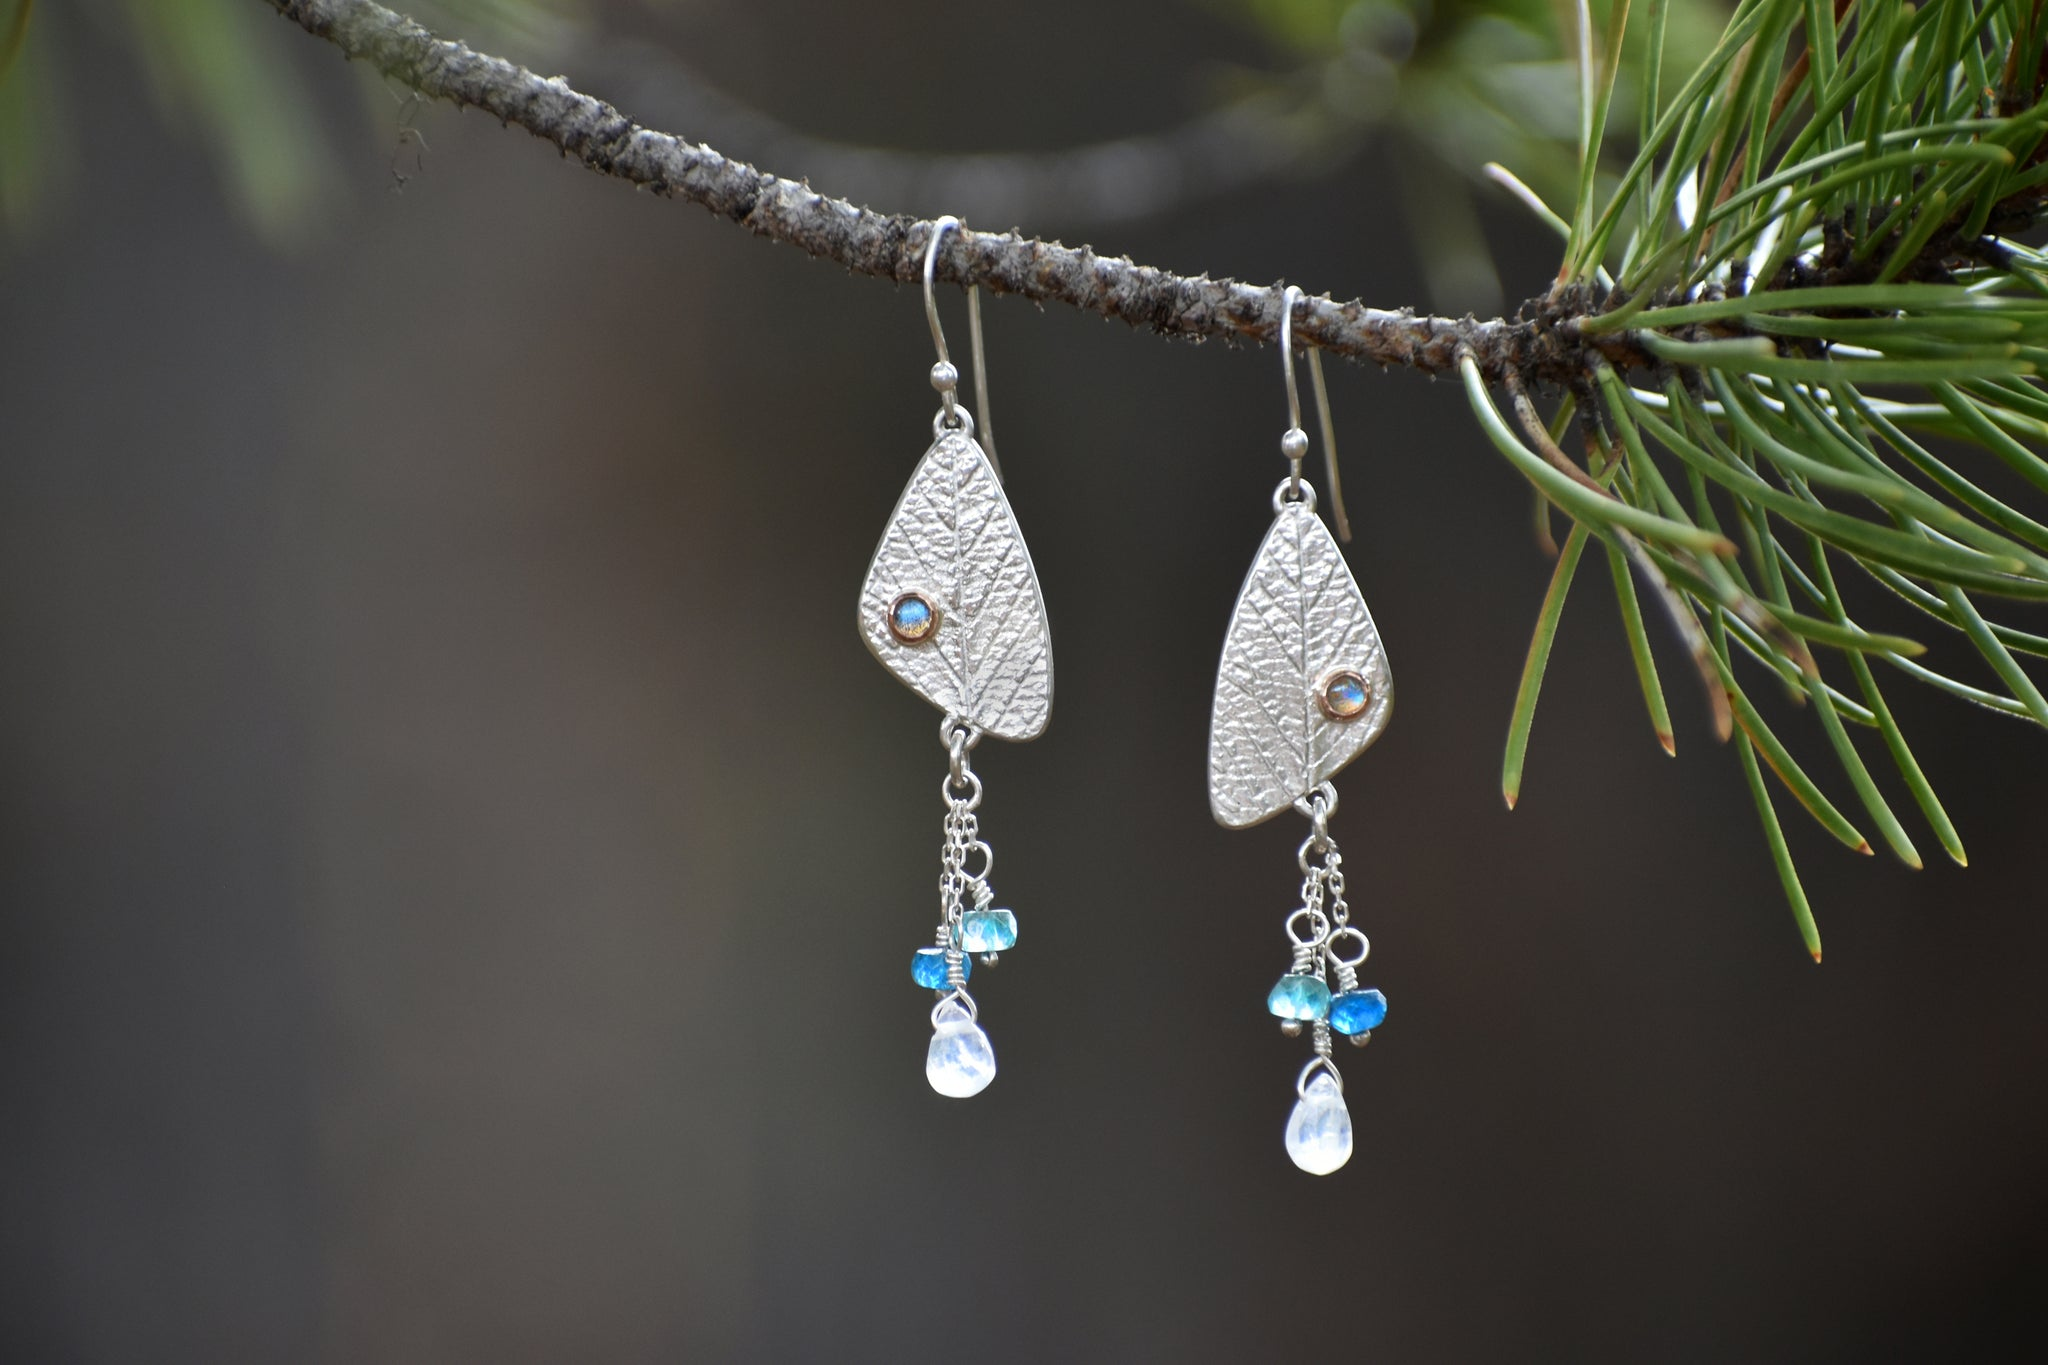 Leaf Earrings with Stones